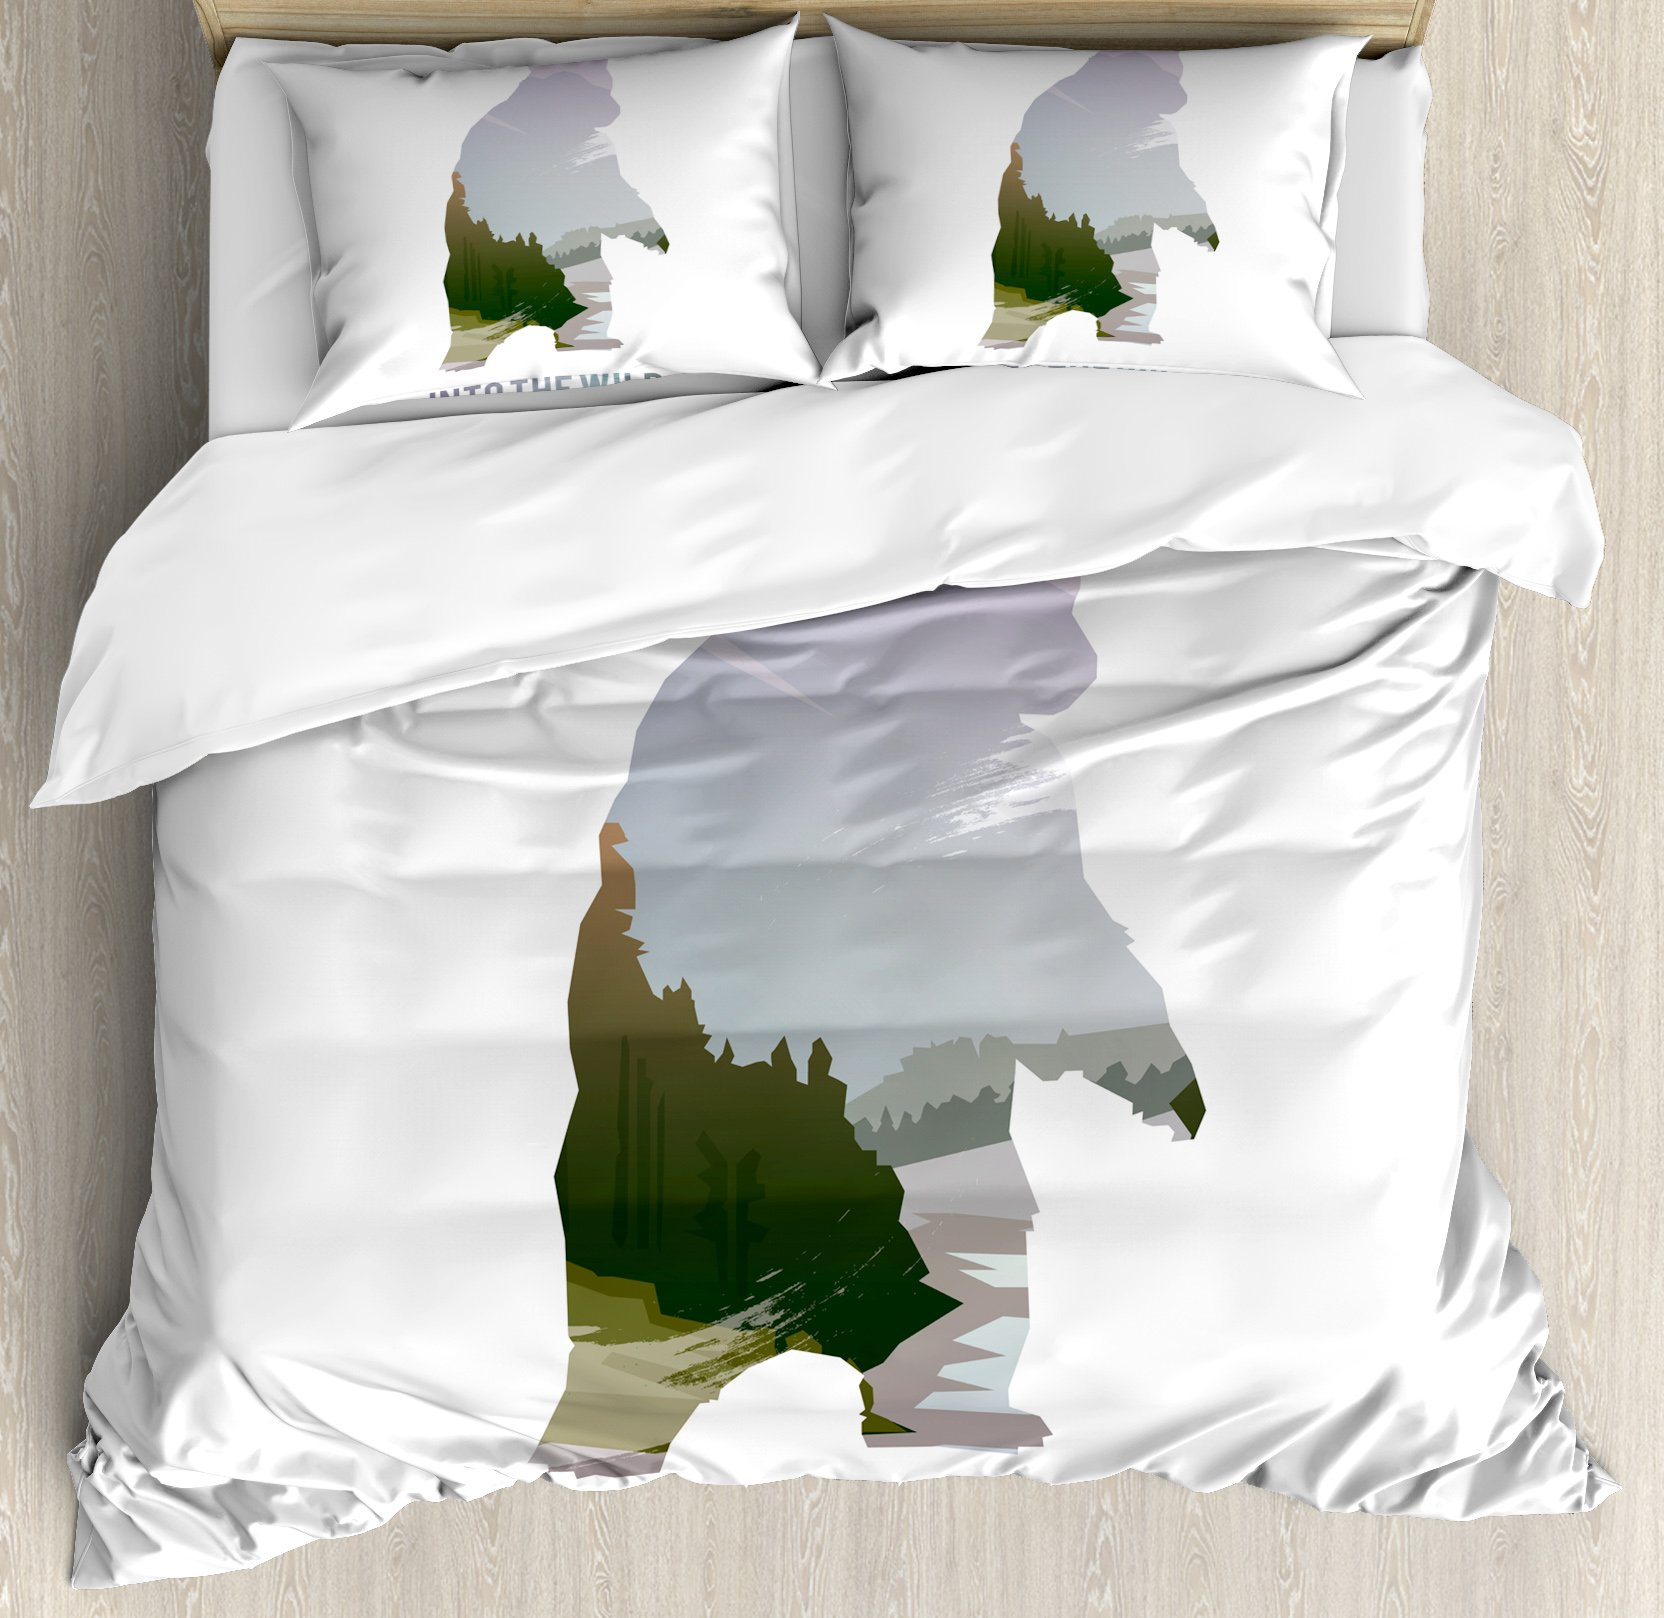 Ambesonne Cabin Decor Duvet Cover Set Queen Size, Wild Animals of Canada Survival in the Wild Theme Hunting Camping Trip Outdoors, Decorative 3 Piece Bedding Set with 2 Pillow Shams, Multicolor